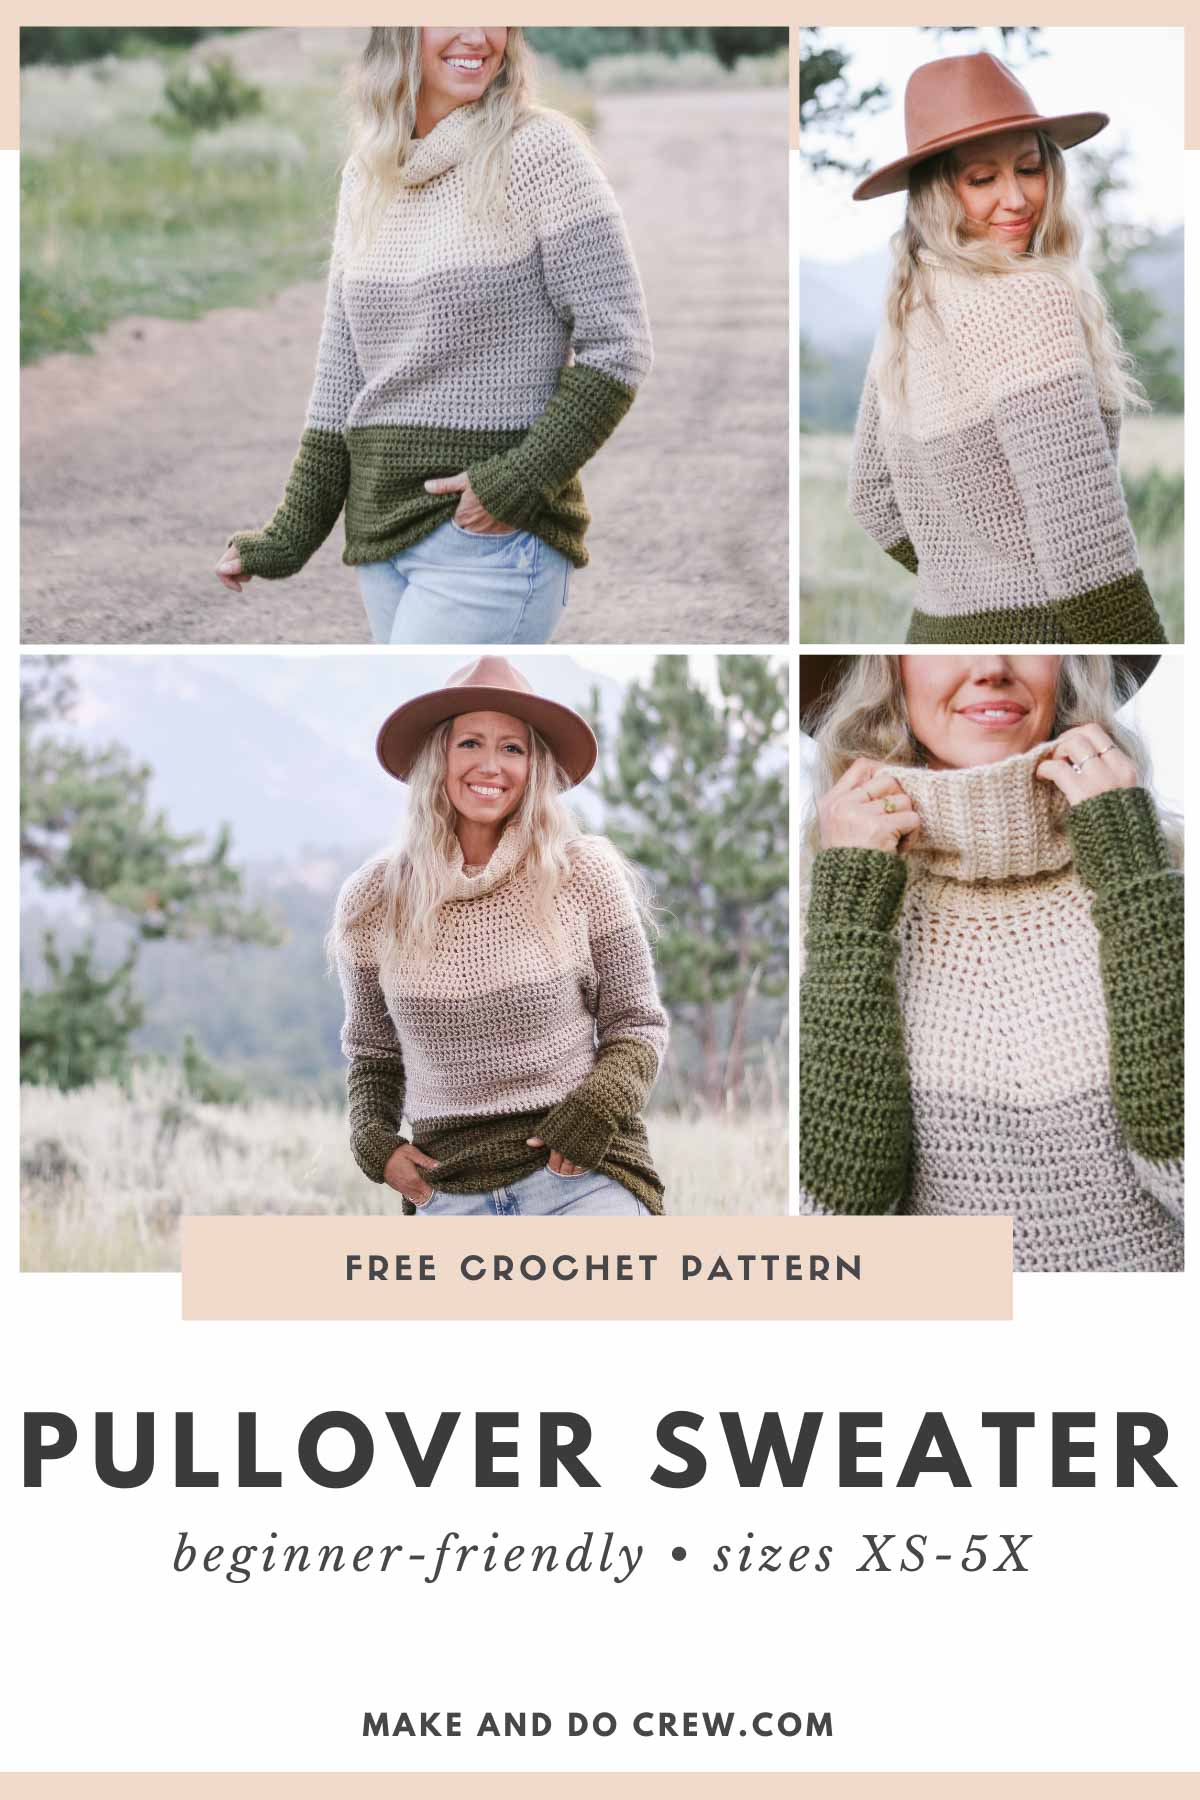 Grid of photos of a woman wearing a crochet yoke sweater pattern that has a turtleneck collar and a color block pattern.